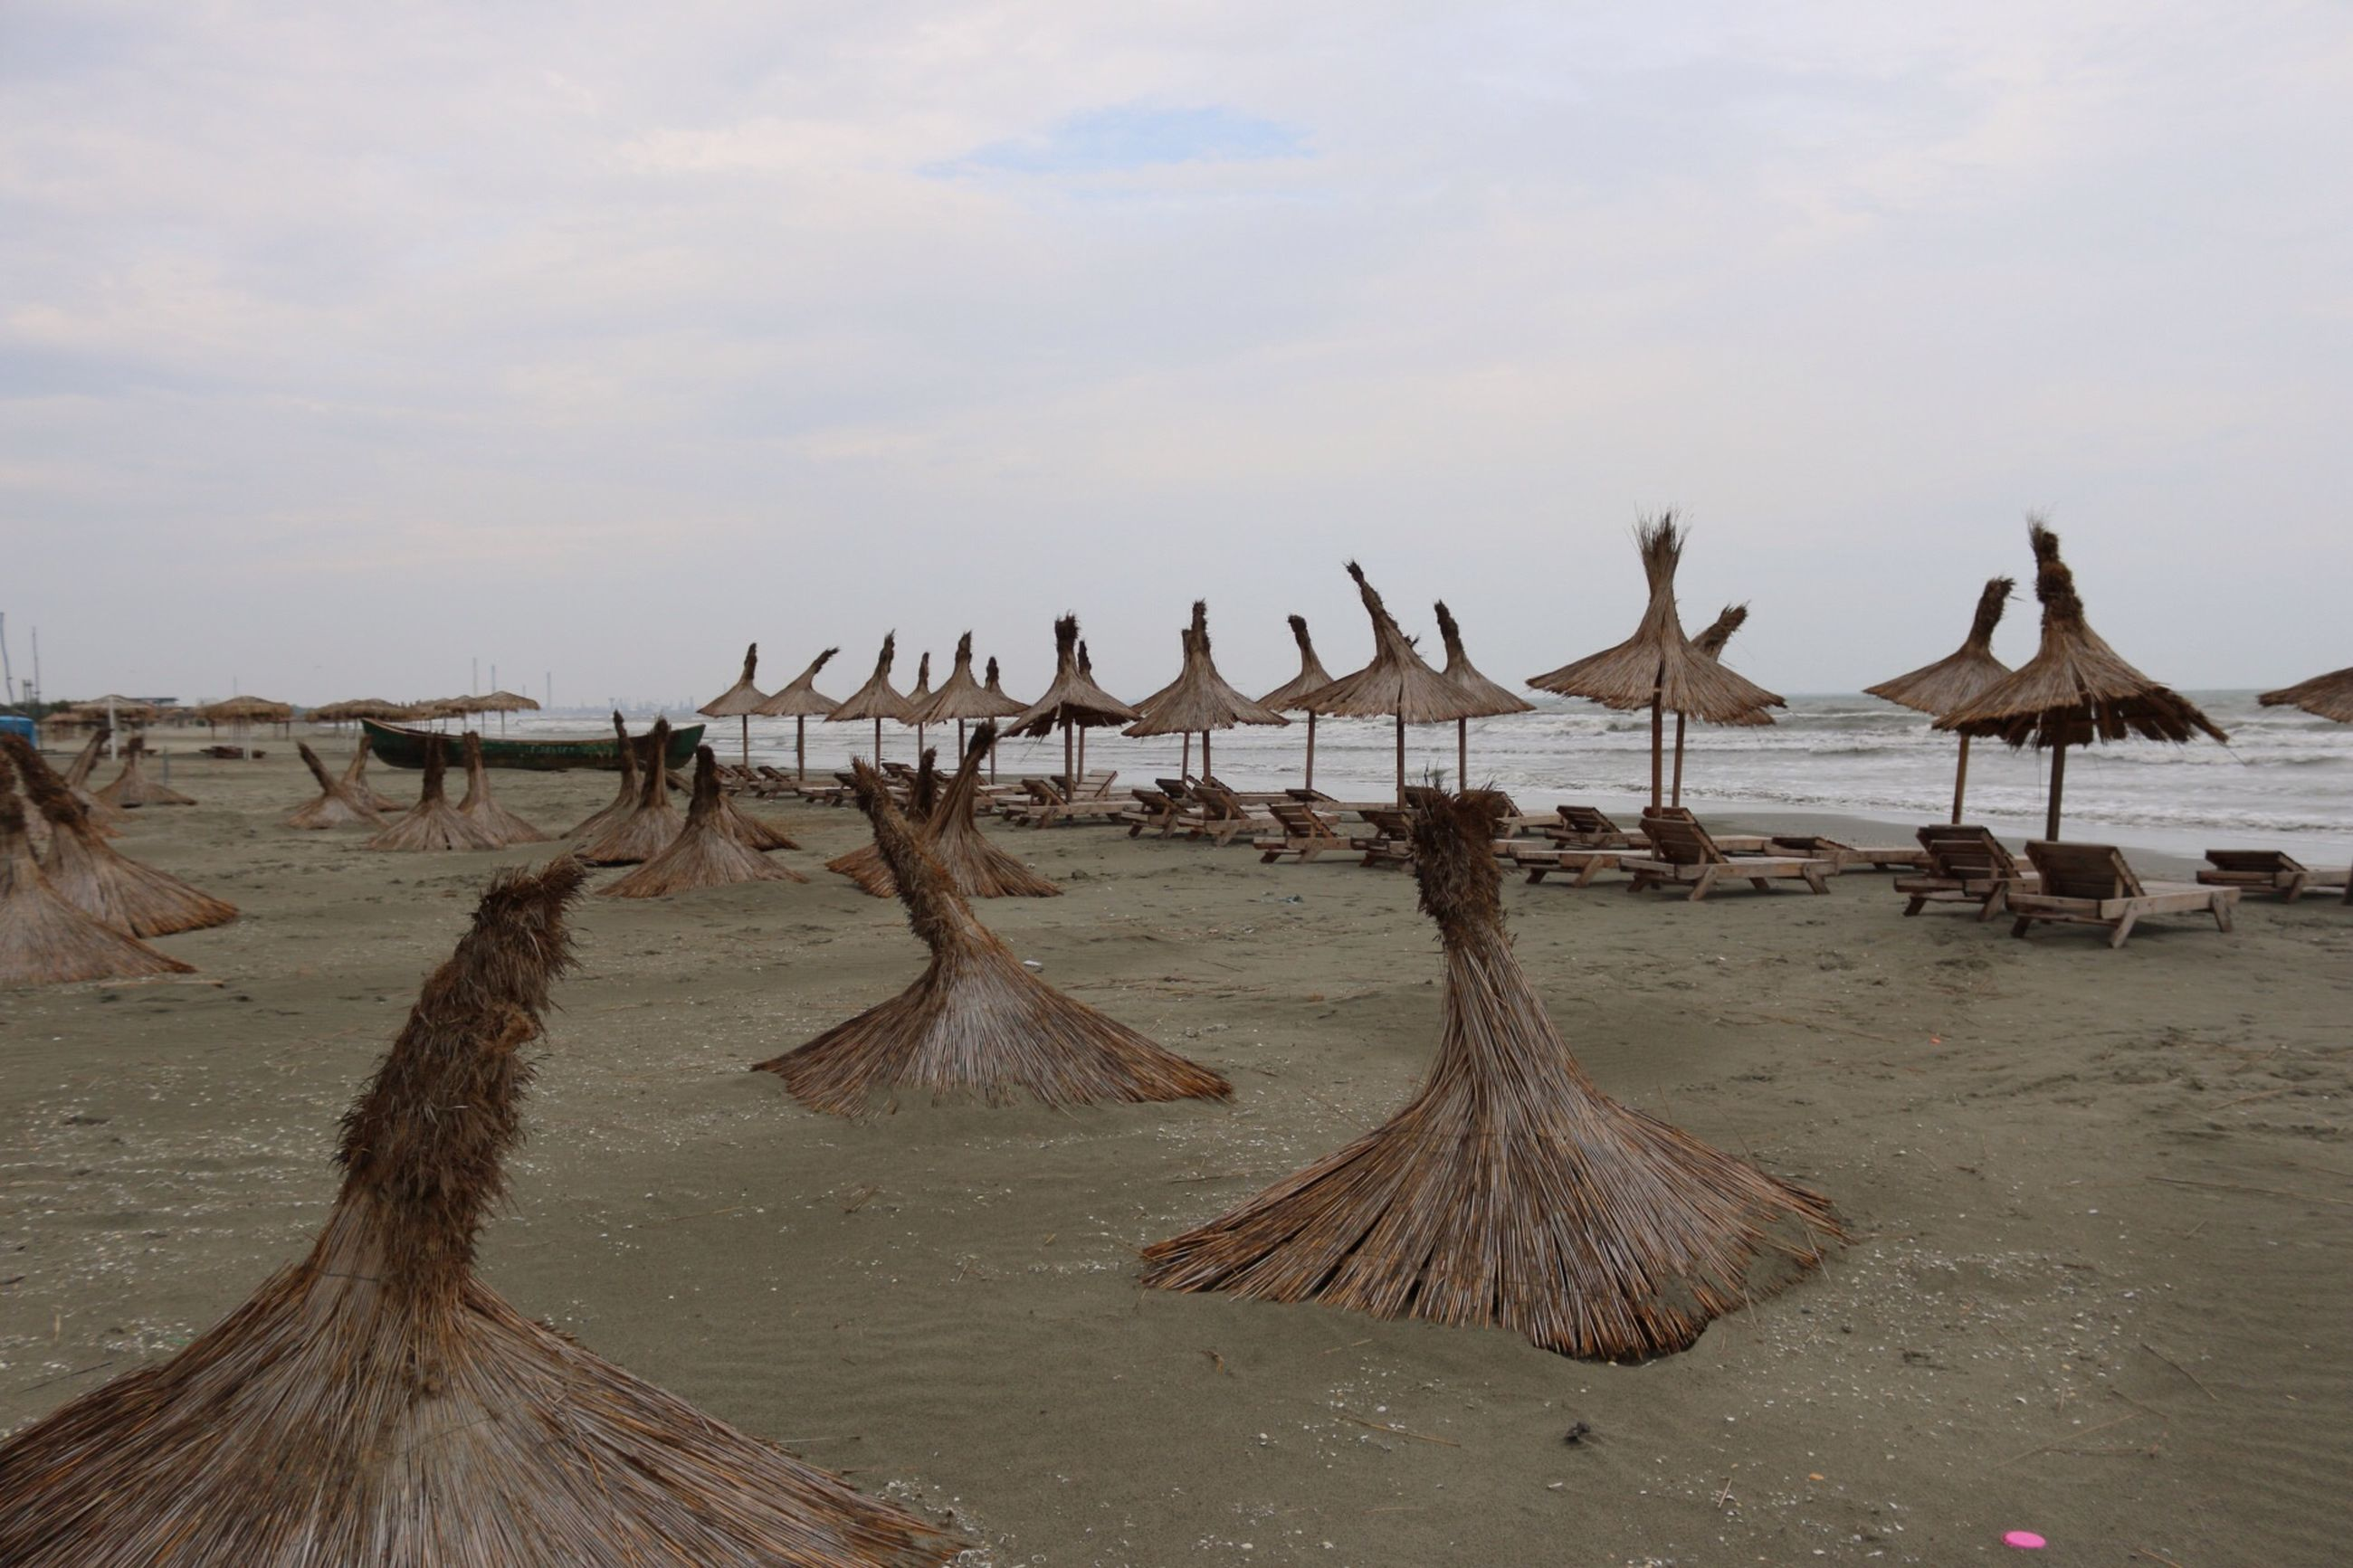 beach, sand, sea, water, sky, shore, bird, tranquil scene, tranquility, animal themes, nature, scenics, animals in the wild, wood - material, wildlife, beauty in nature, in a row, day, outdoors